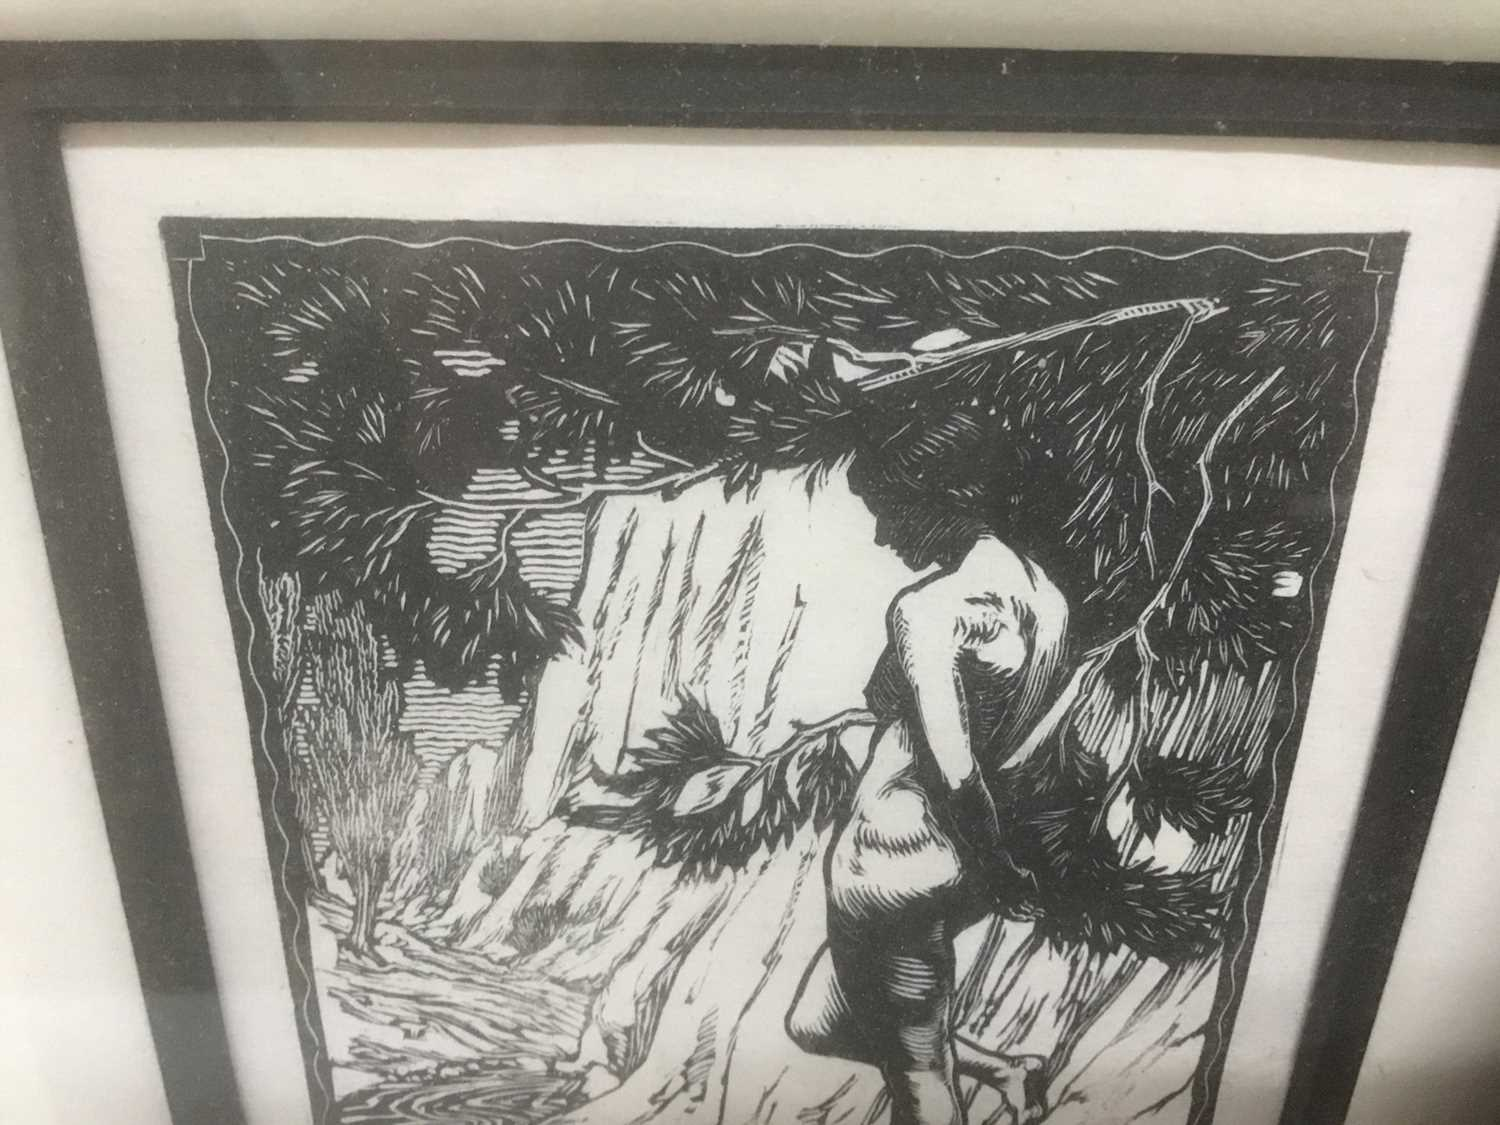 Charles Thrupp Nightingale (1878-c.1939) signed woodcut - Echo, titled, signed and dated 1922 in pen - Image 5 of 7